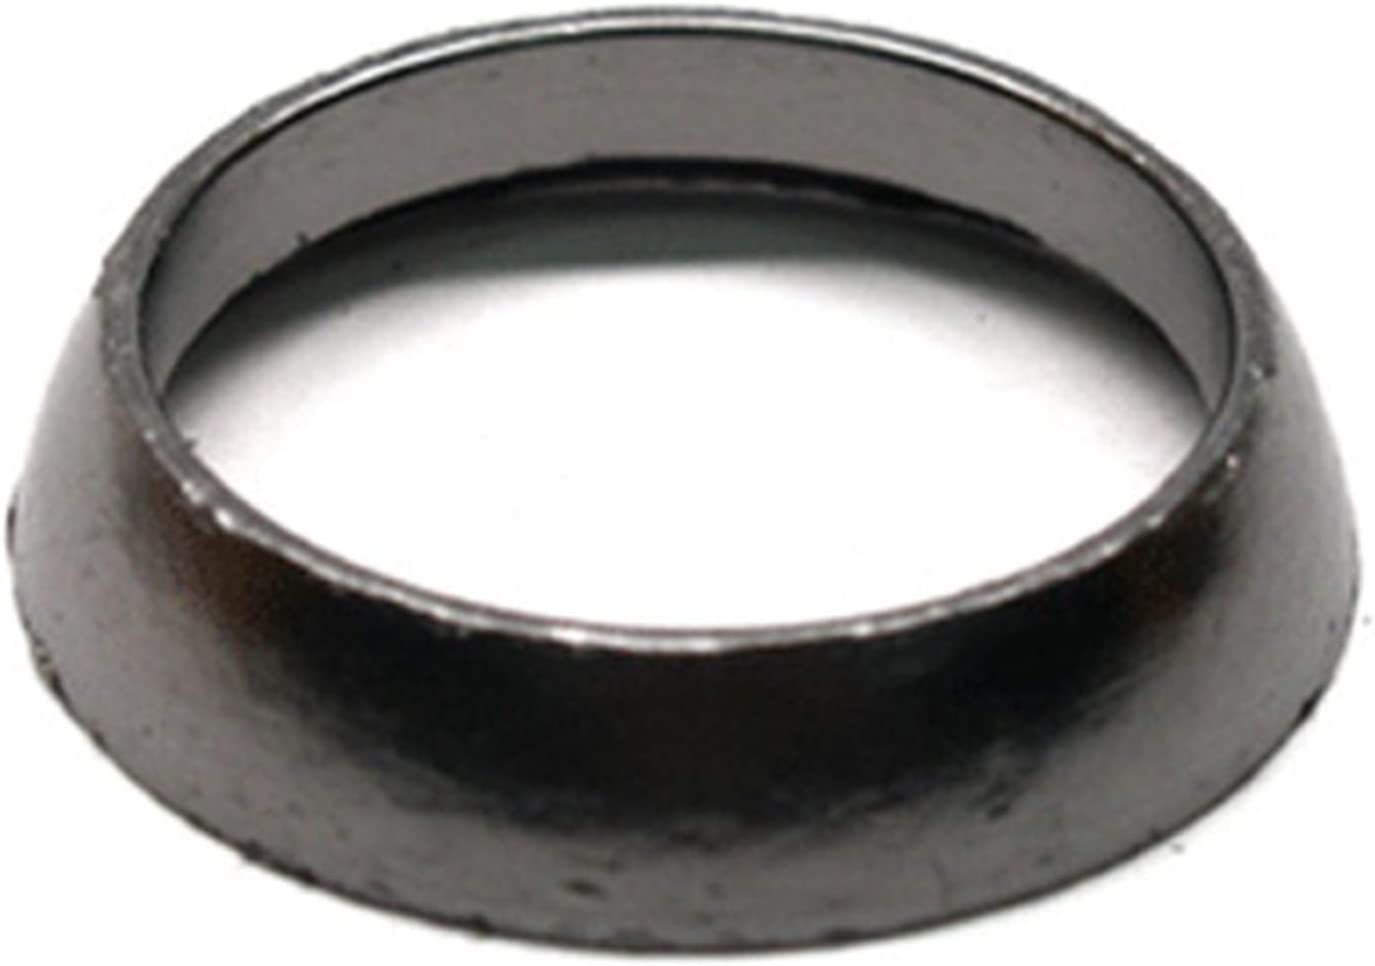 2021 spring and summer new Y-Pipe to wholesale Pipe Exhaust Seal - 65.3mm He I.D. 51.7mm O.D.